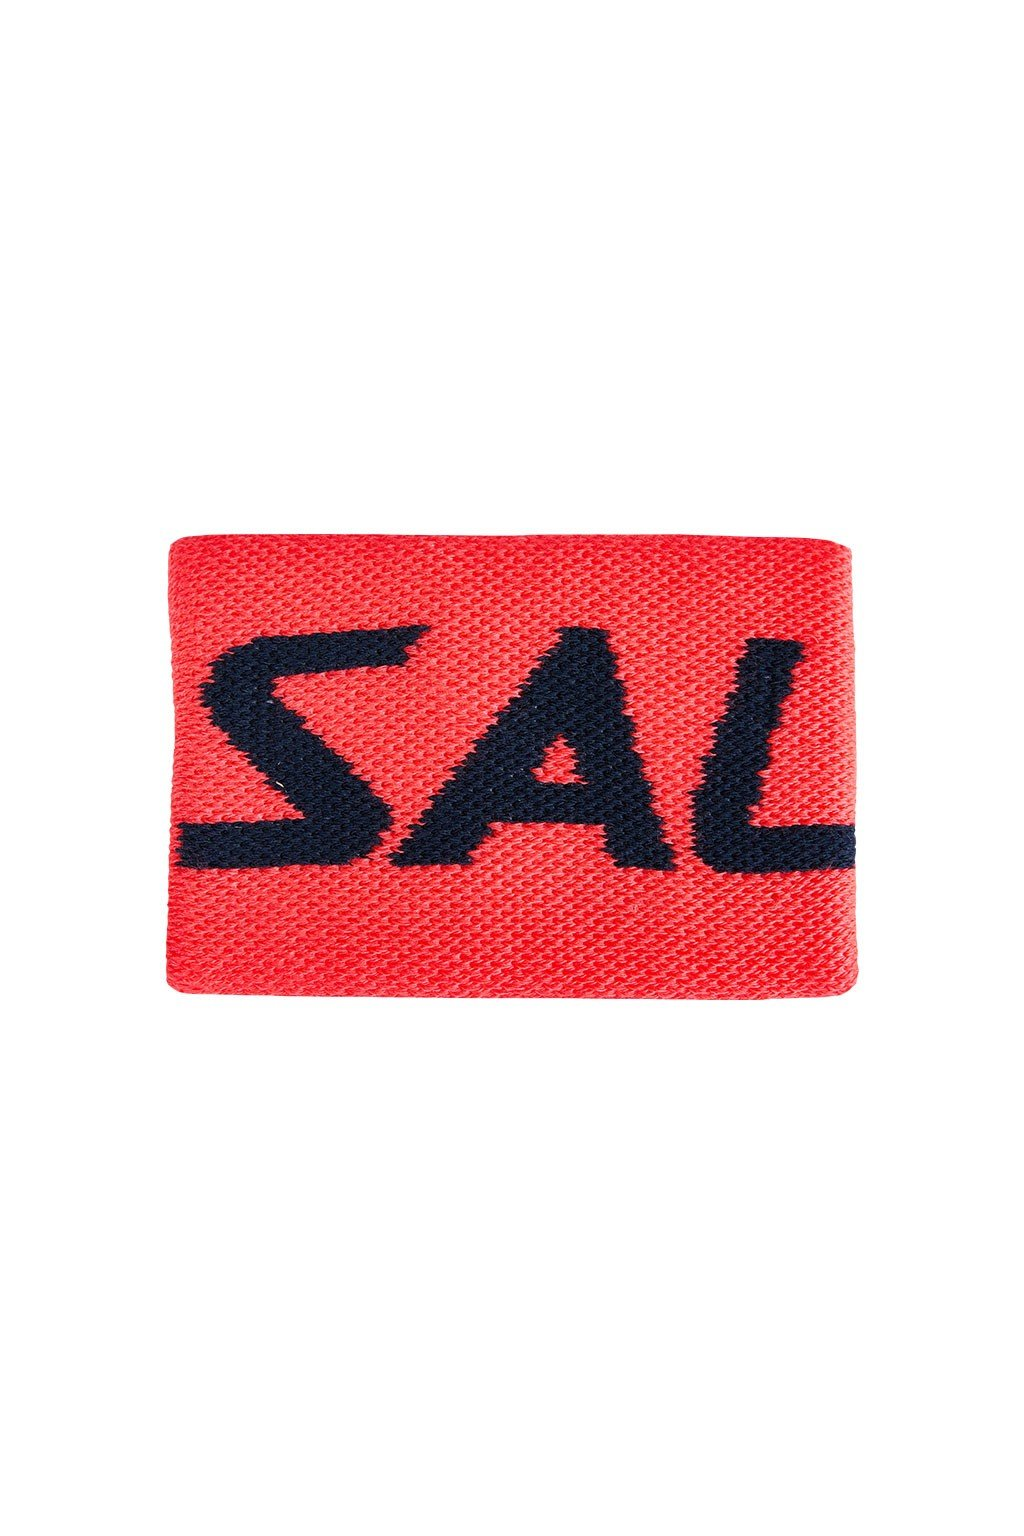 salming wristband mid coral navy